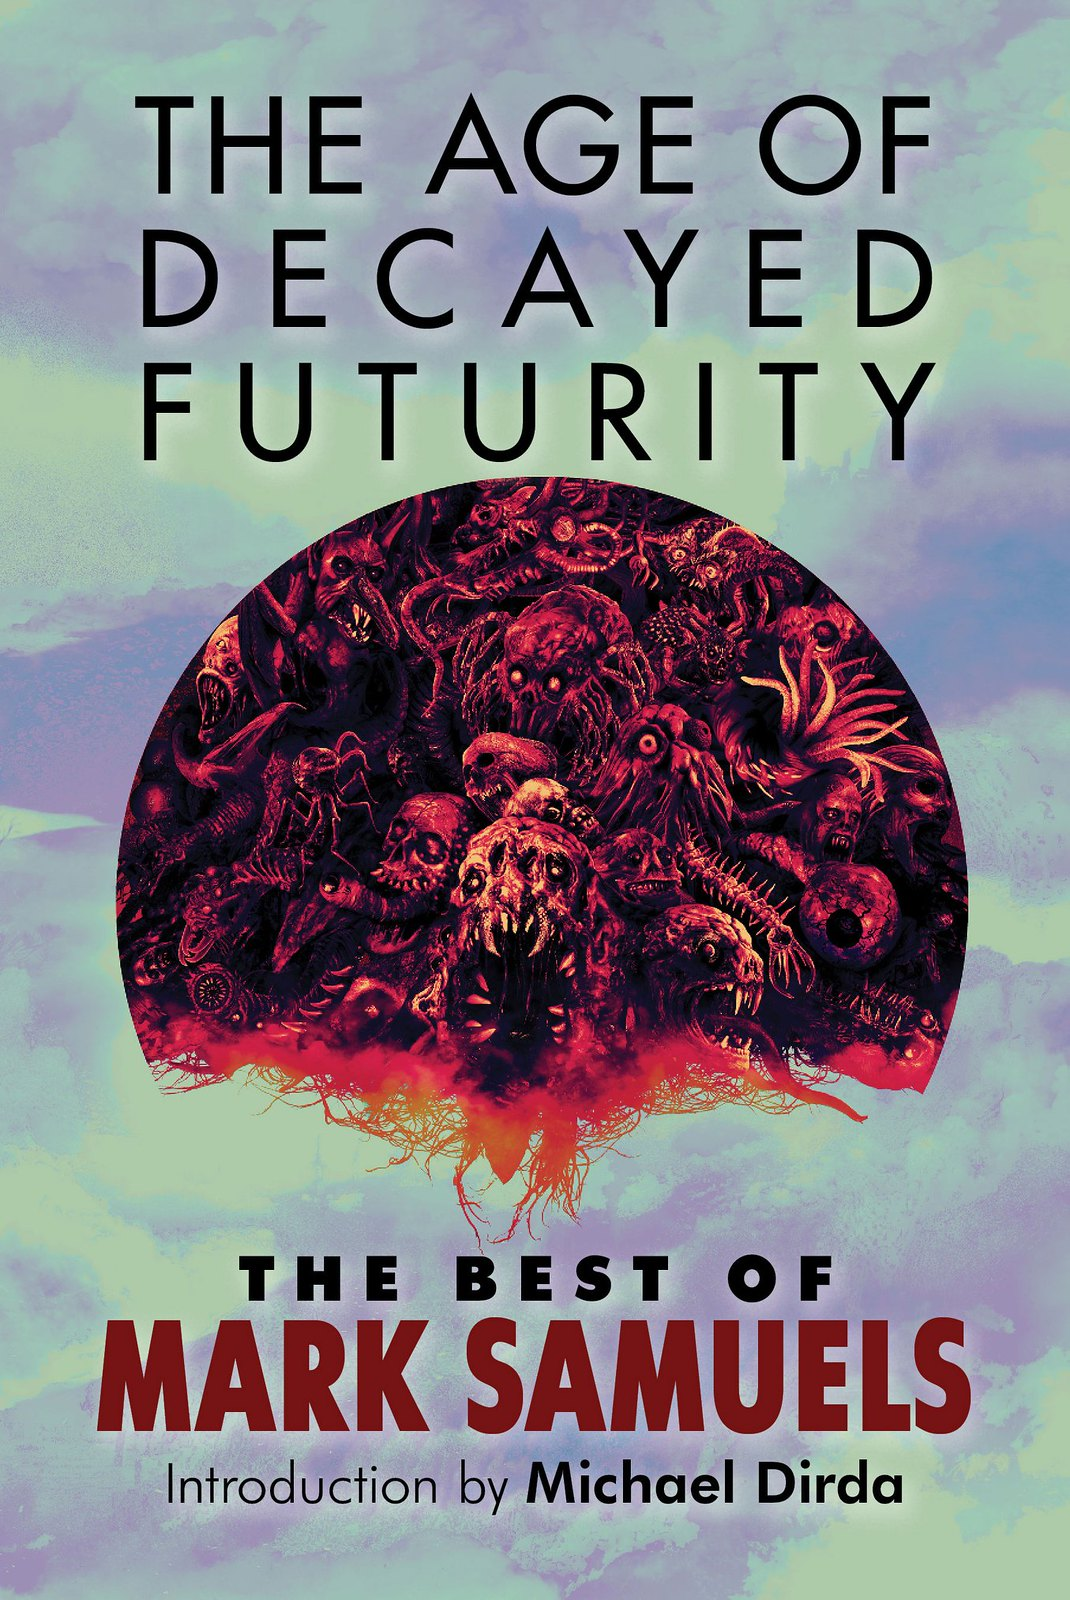 Aeron Alfrey - Cover art for The Age of Decayed Futurity, The Best of Mark Samuels, Hippocampus Press